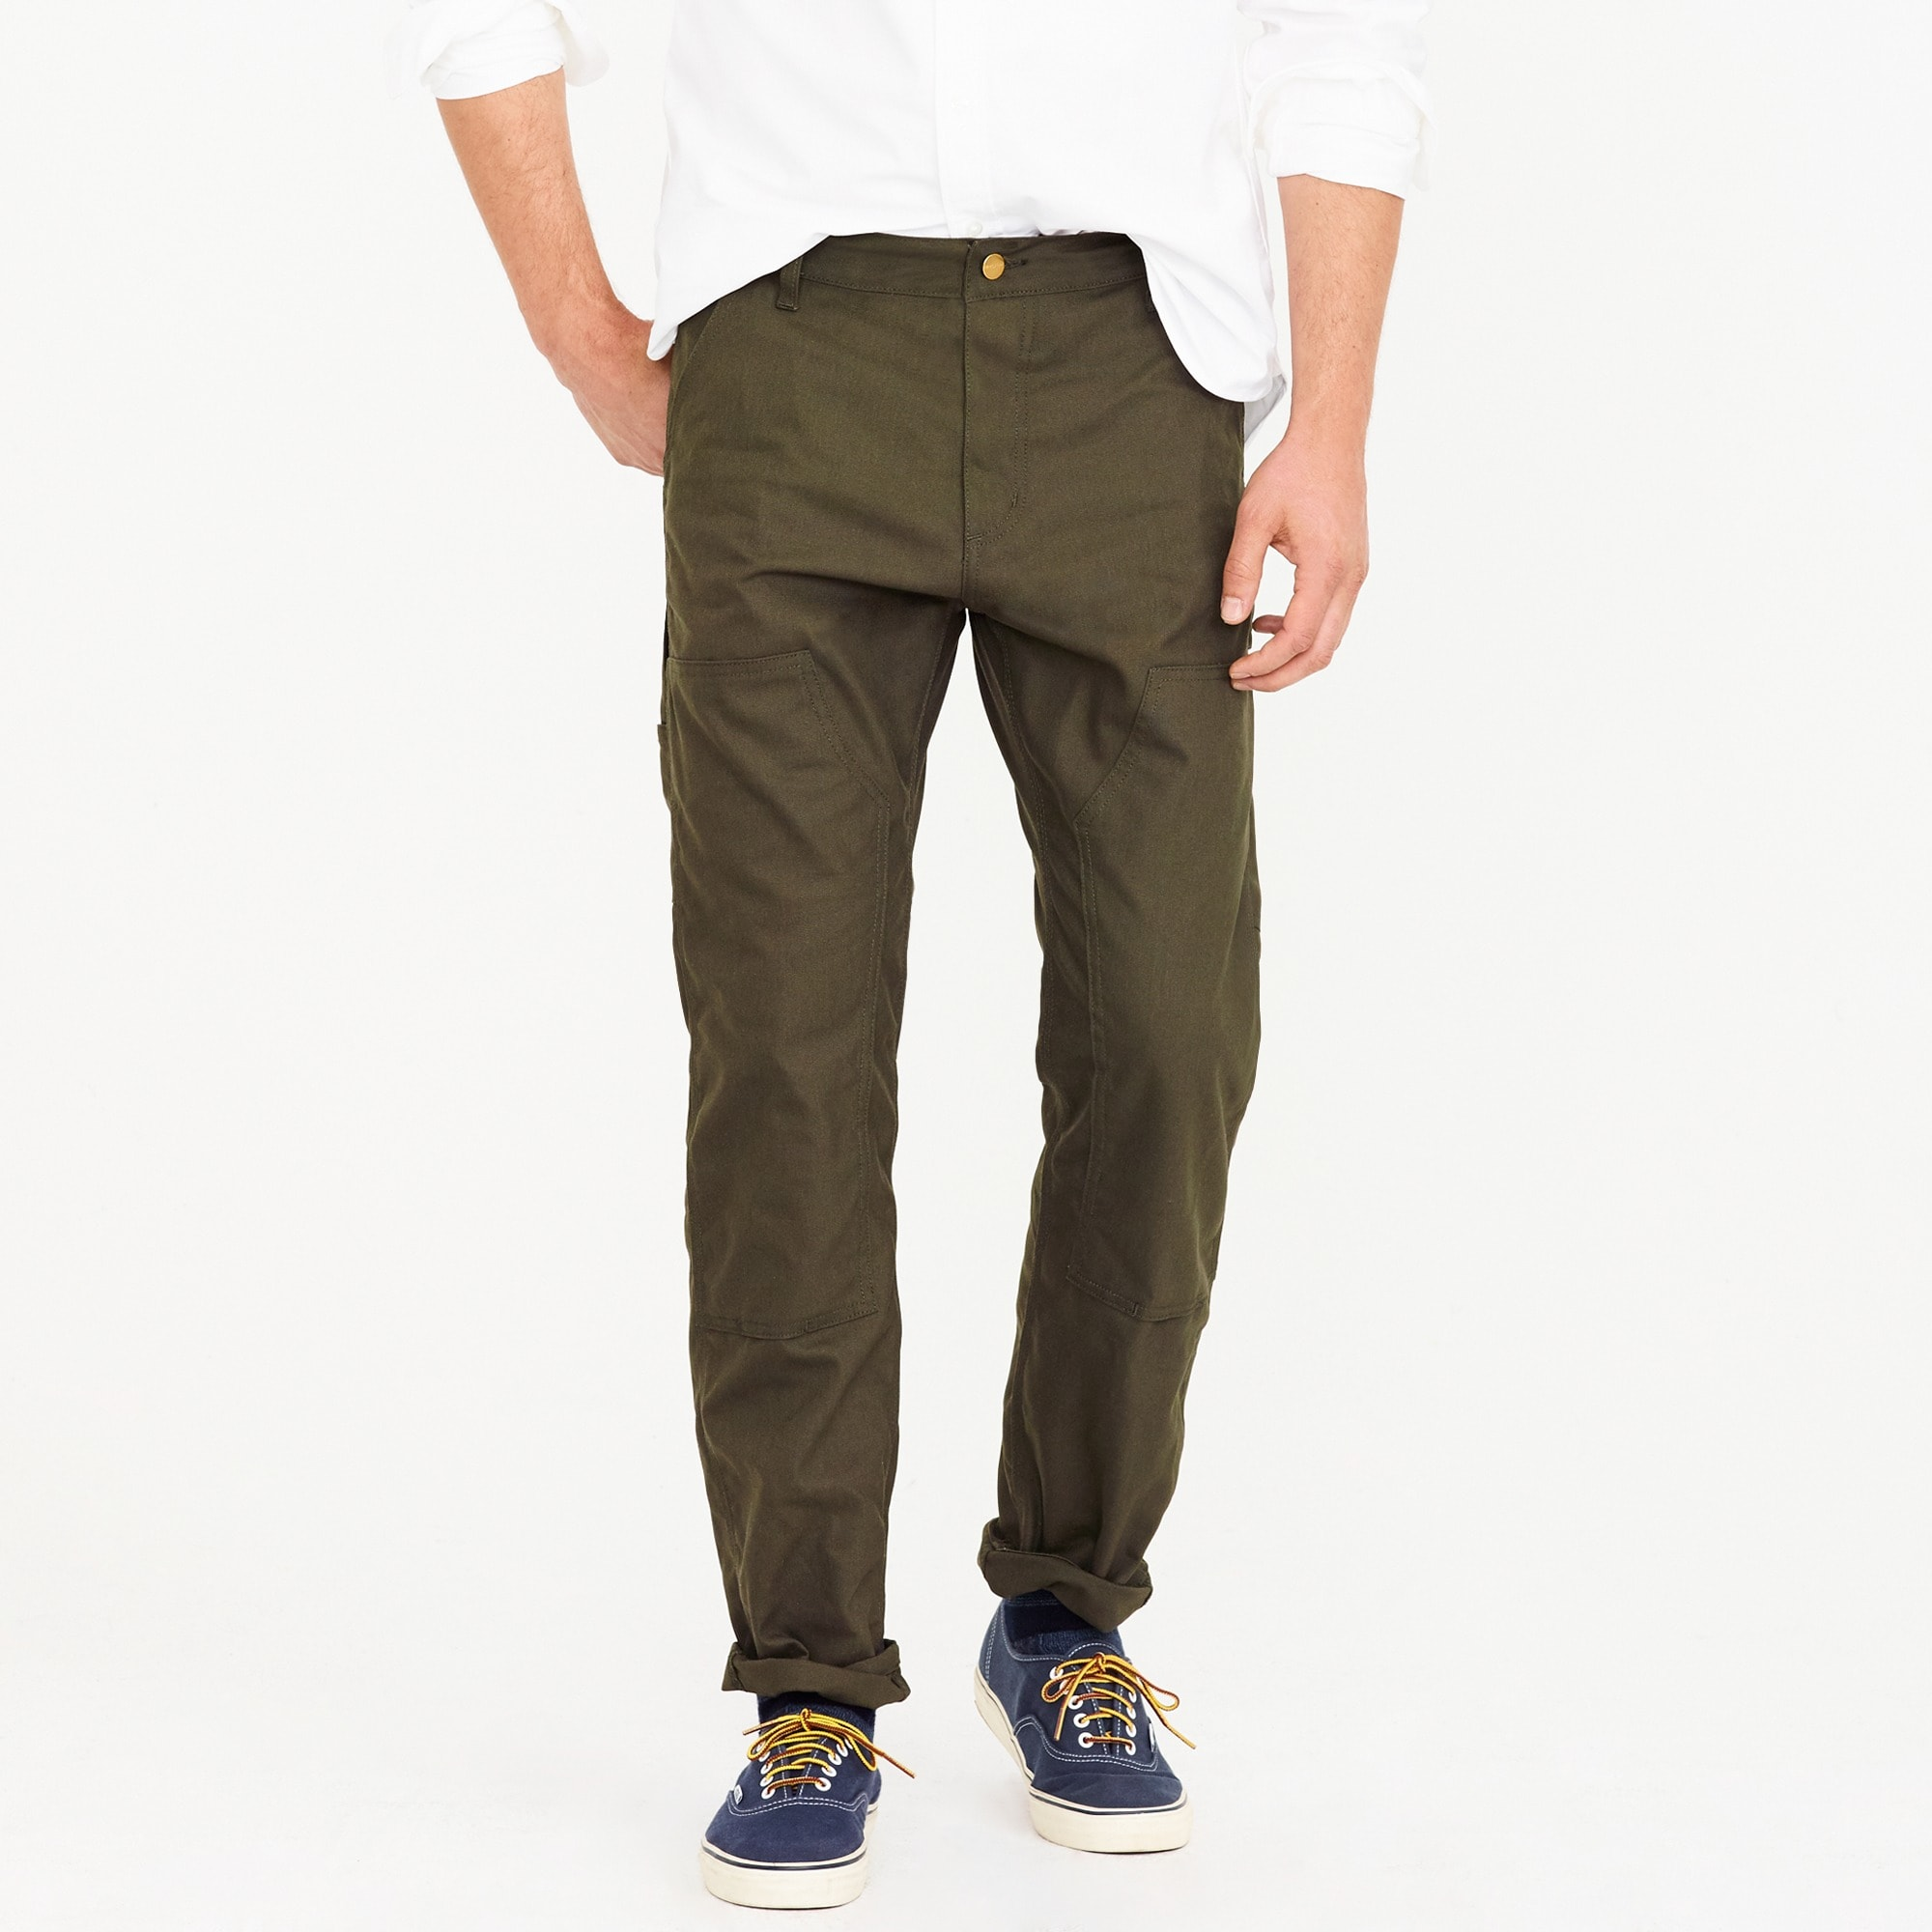 Carhartt® Work in Progress pant in dark navy men j.crew in good company c